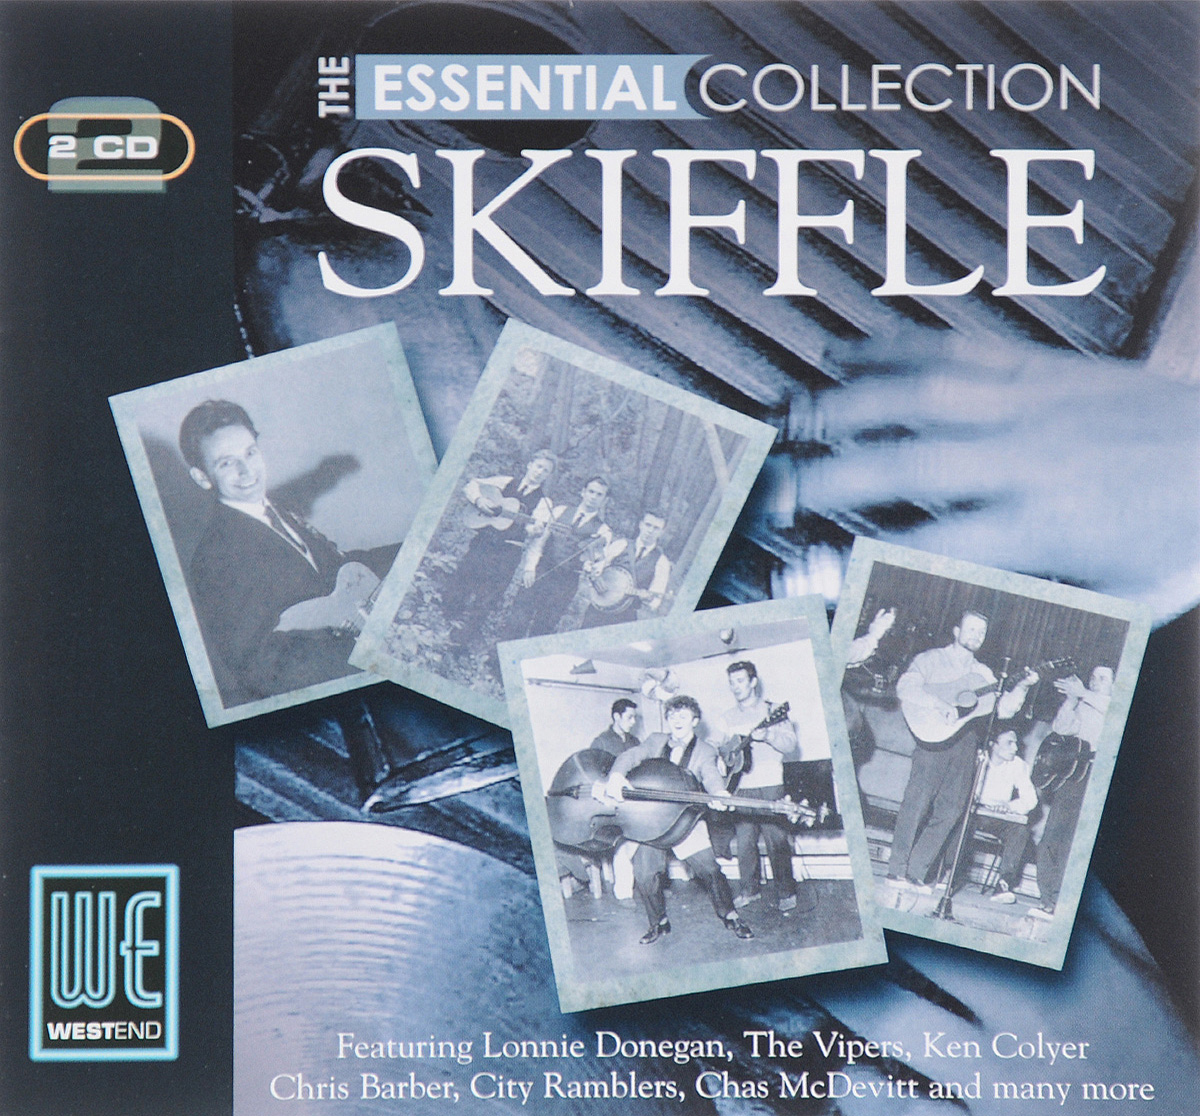 Lonnie Donegan Skiffle Group,The Vipers Skiffle Group,Chas McDevitt Skiffle Group,Джонни Дункан,Алан Ломакс,Peggy Seeger Group,Ken Colyer Skiffle Group,Johnny Parker's Washboard Band,City Ramblers Skiffle Group,Betty Smith's Skiffle Group Essential Collection. Skiffle (2 CD)